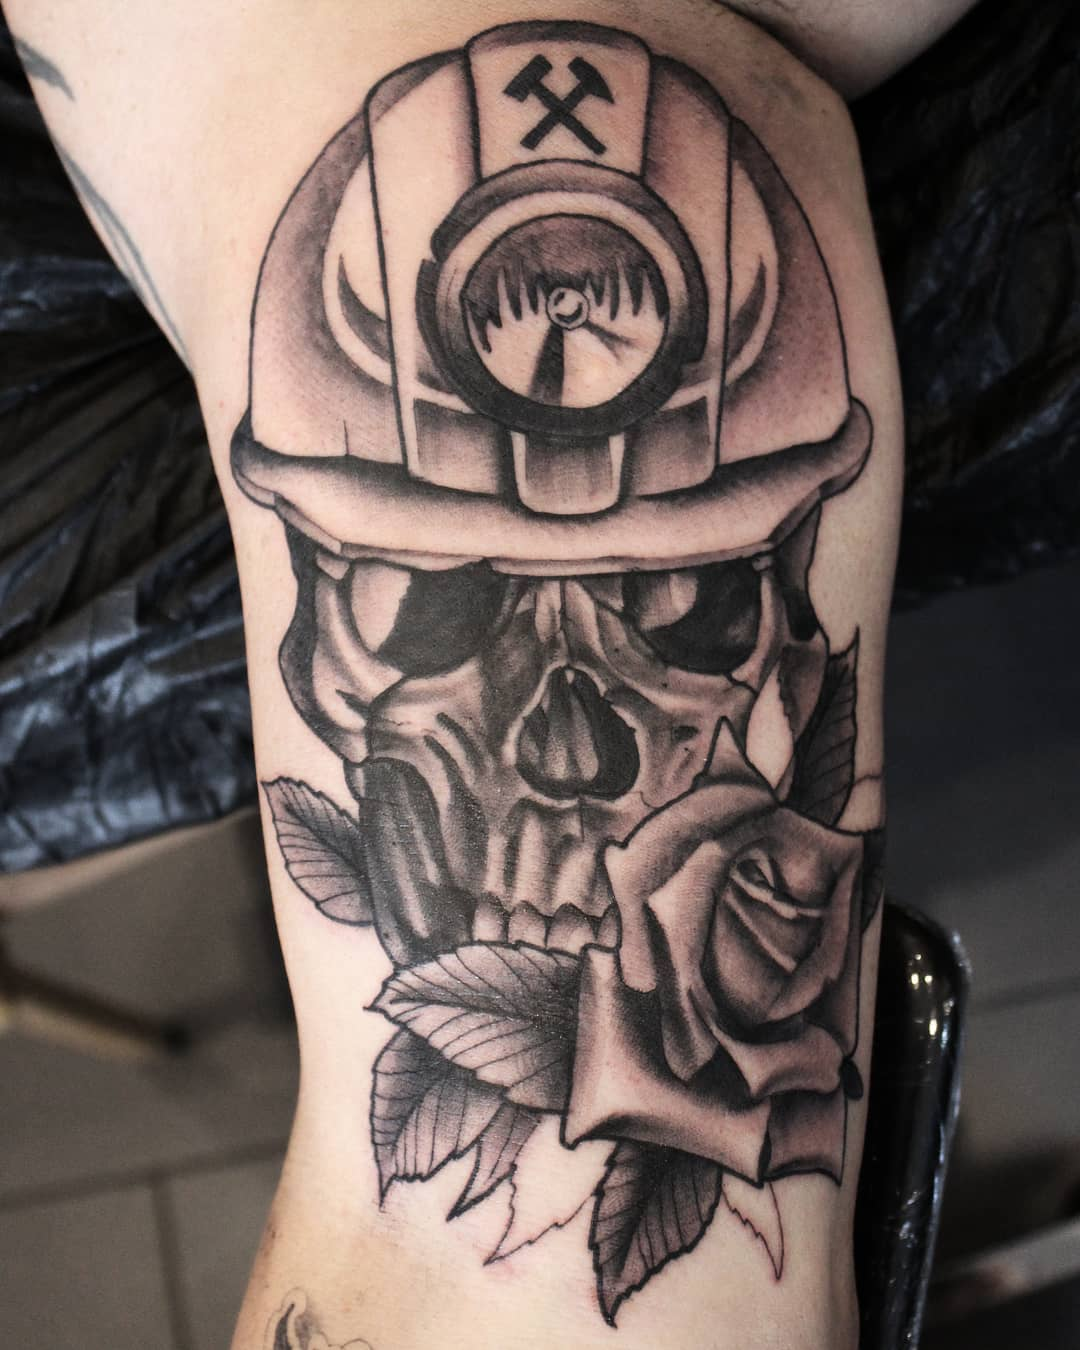 Thank you so much marcel! #germantattooers #tattooworkers #tattoolife #tattoopun